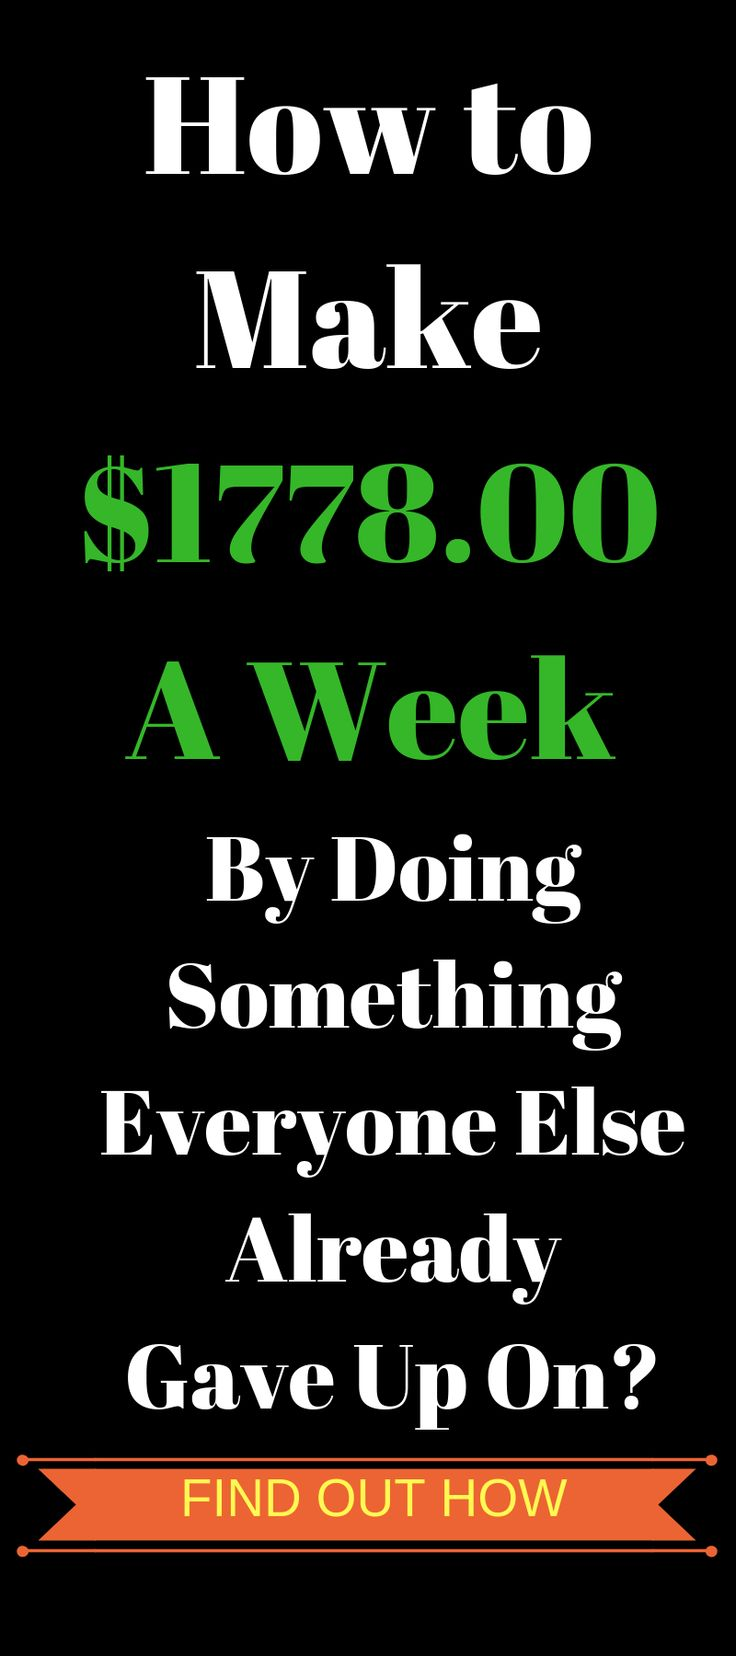 HOW TO MAKE MONEY ONLINE WORKING FROM HOME.  Want to make  $1778 a week by doing… – Belle Elliott